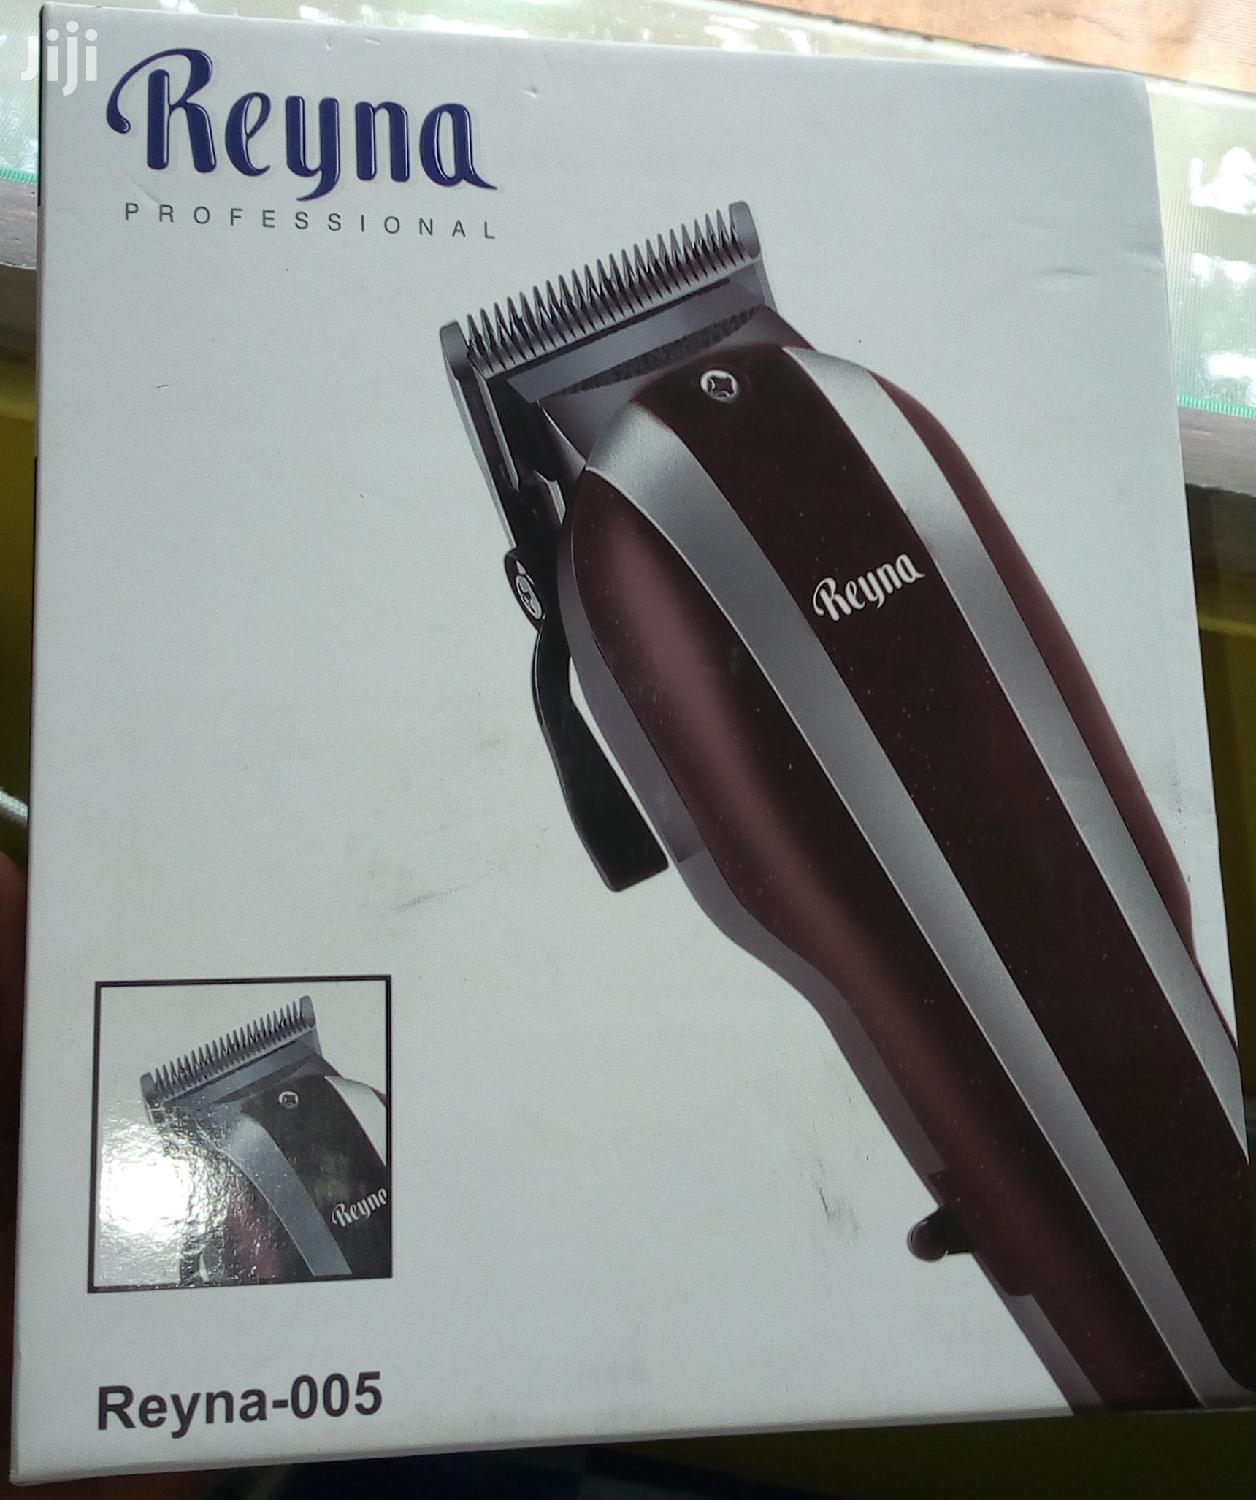 Quality Hair Clipper for Sale | Tools & Accessories for sale in Kwashieman, Greater Accra, Ghana